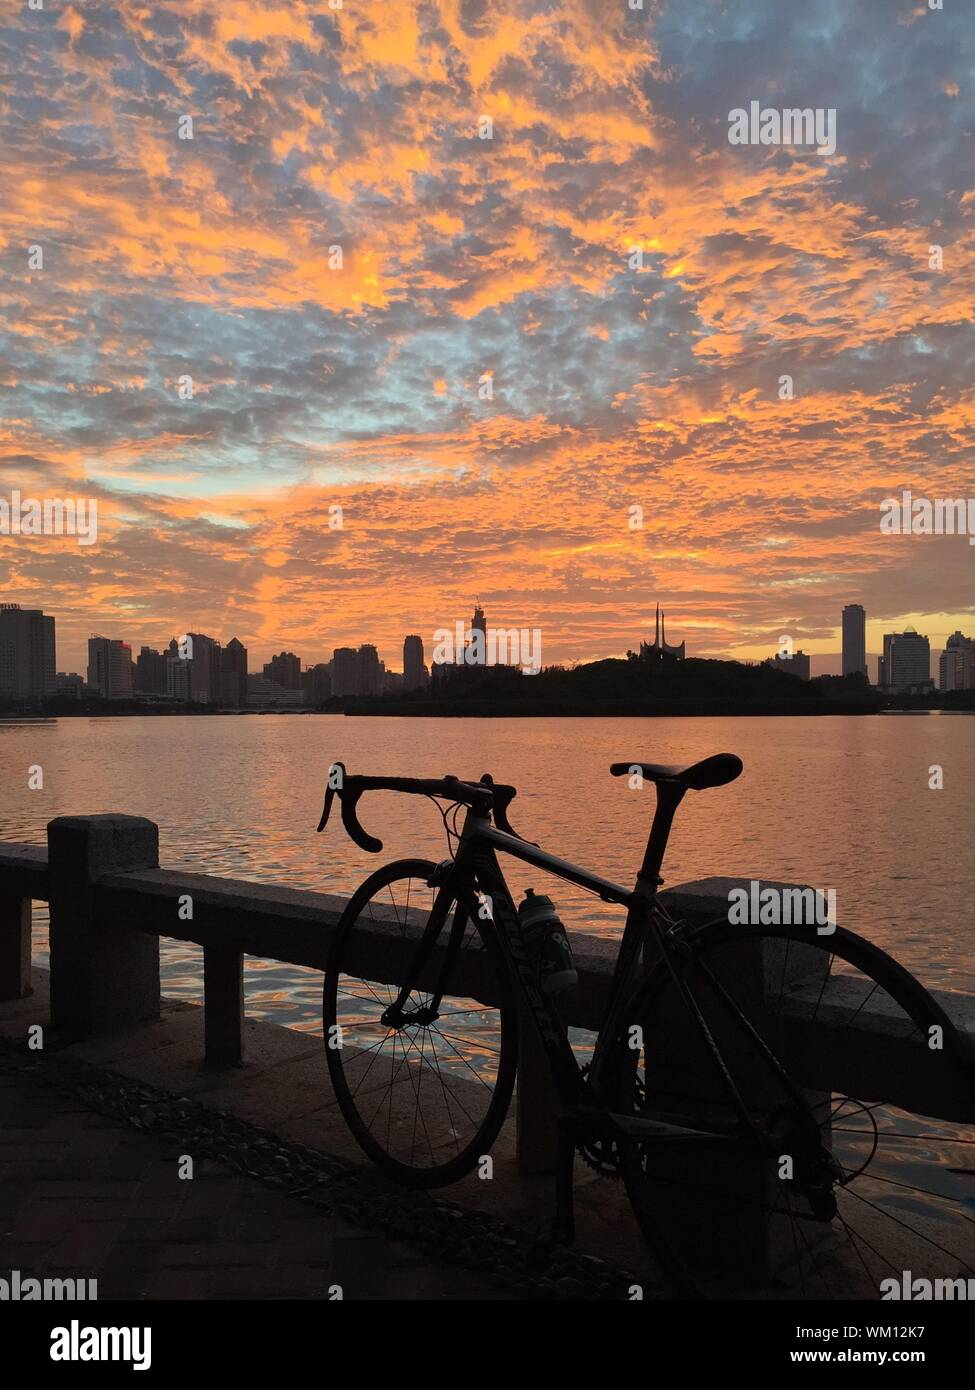 Bicycle Parked On Railing By Lake Against Cloudy Sky During Sunset Stock Photo